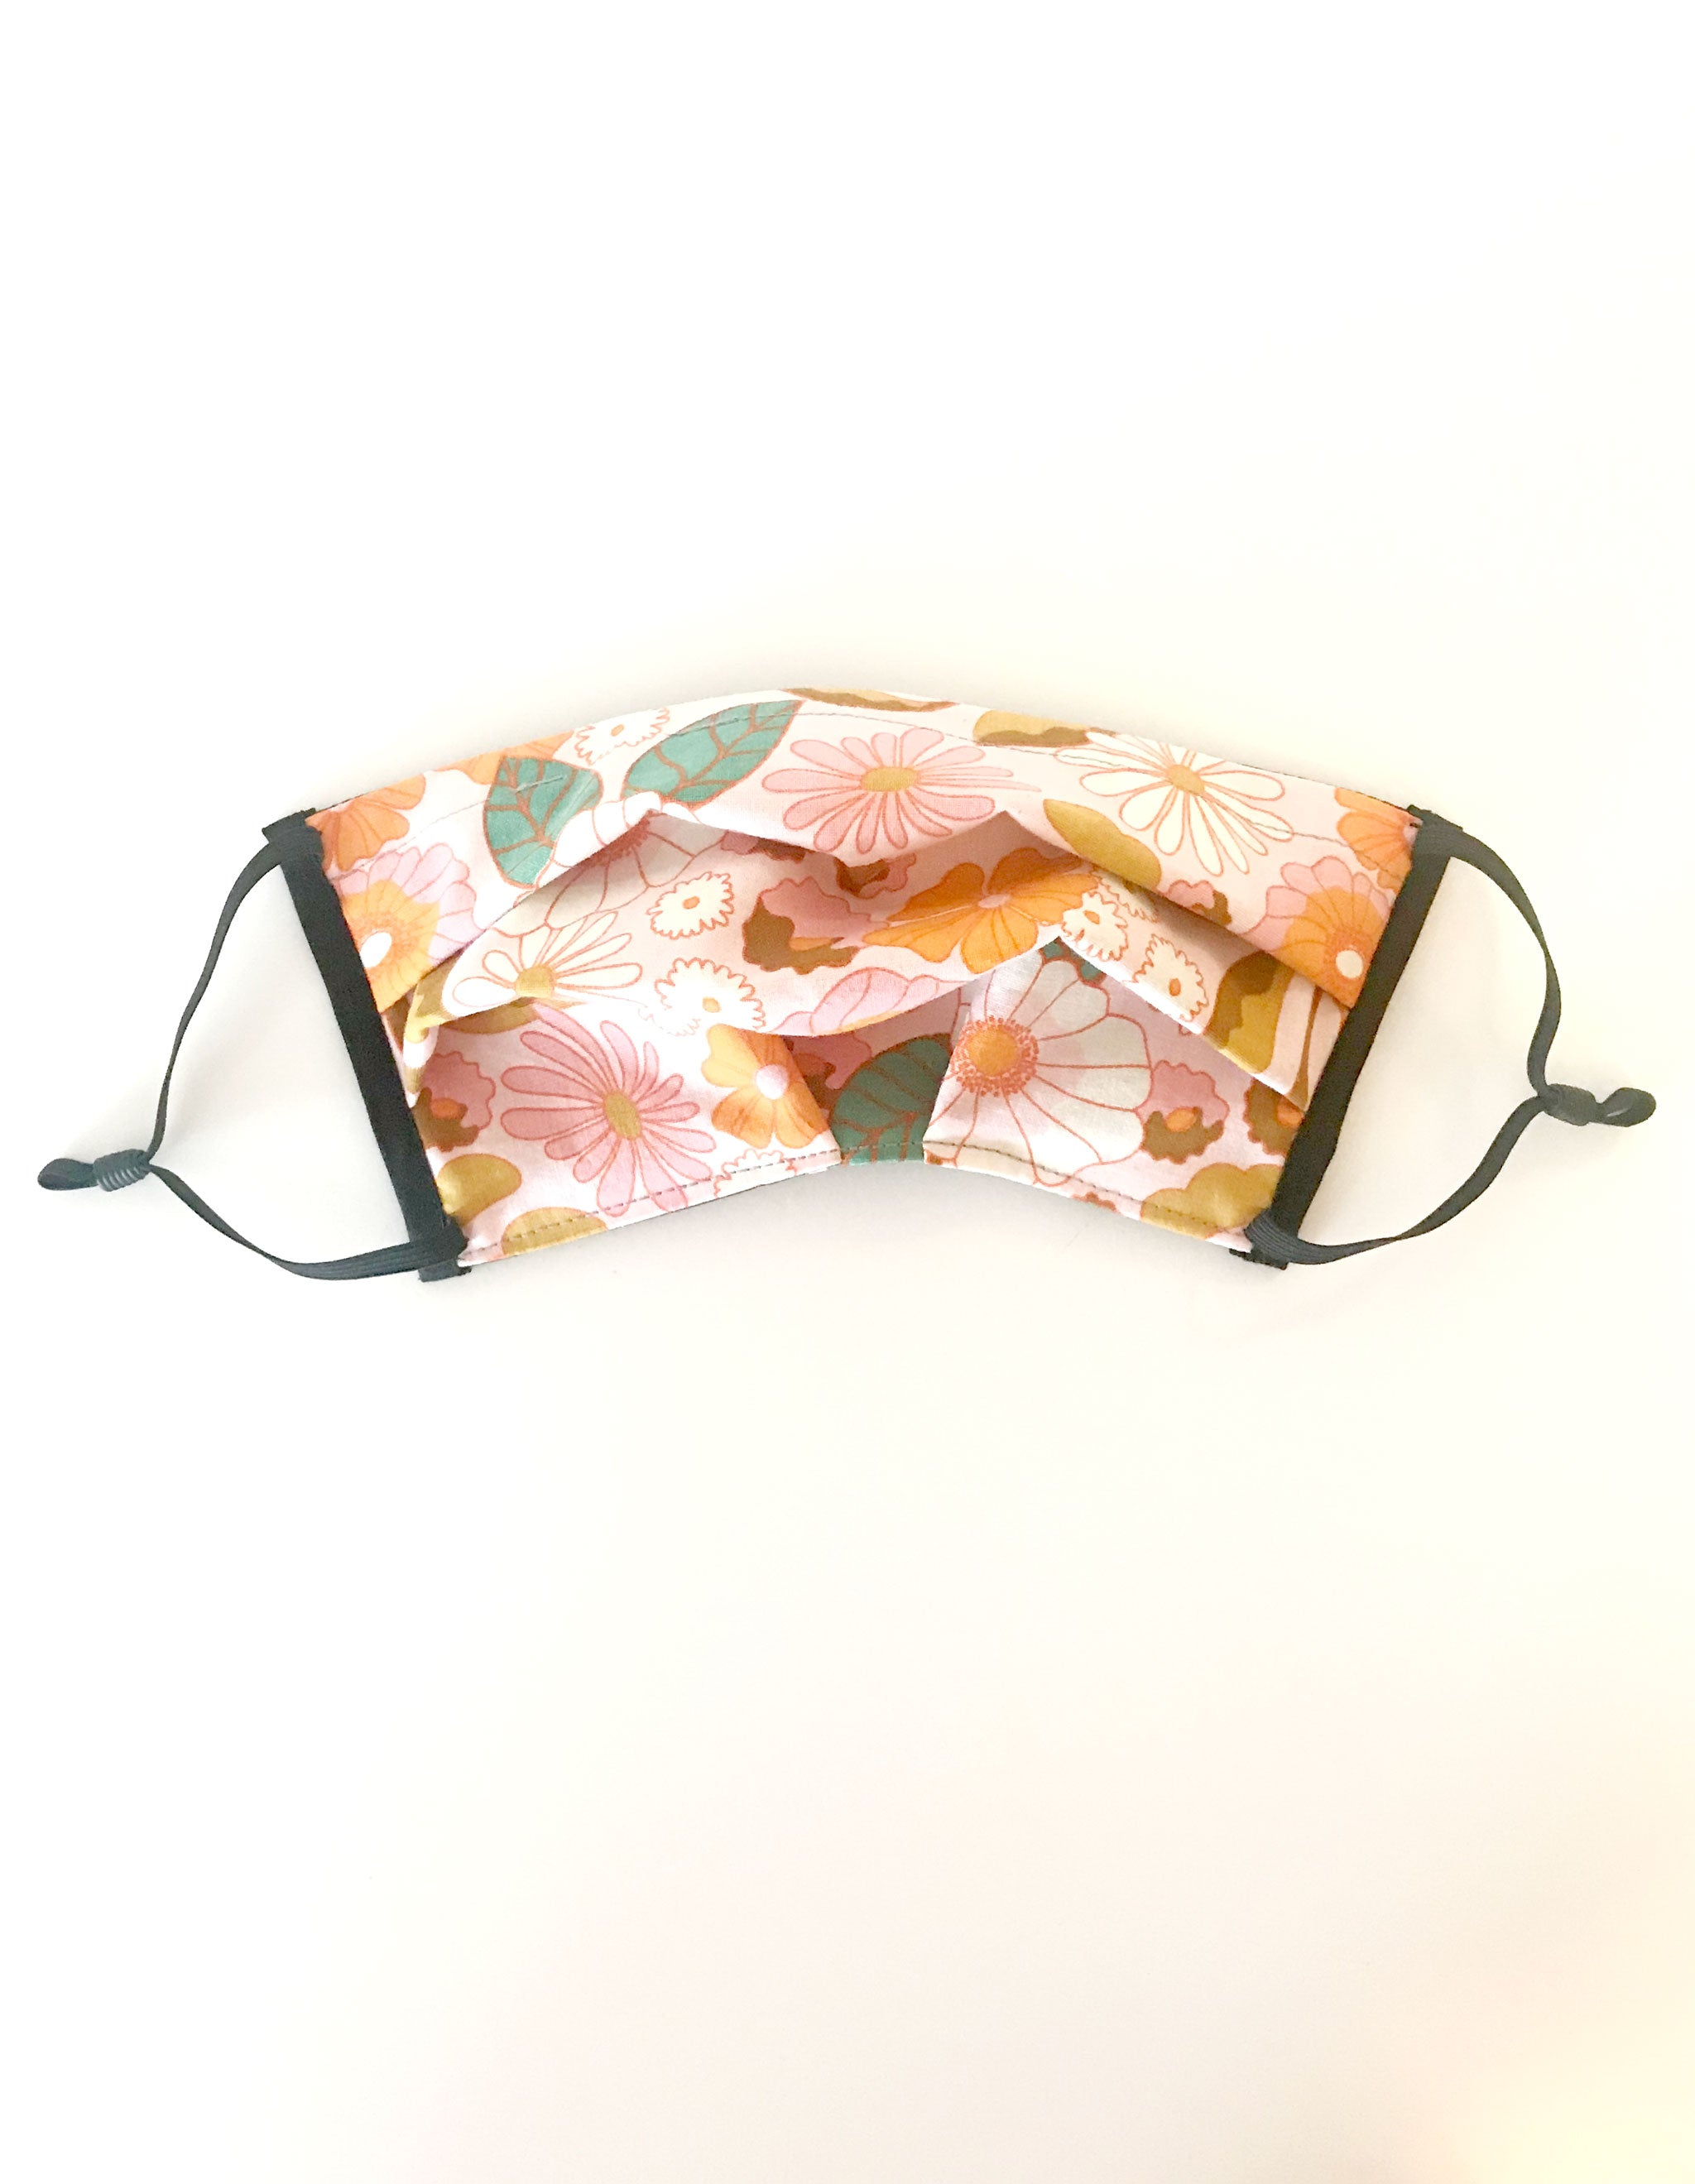 vintage-like floral print fabric face mask with black adjustable elastic ear loops. Fabric features large white and pink flowers outlined in orange with green and tan leaves.